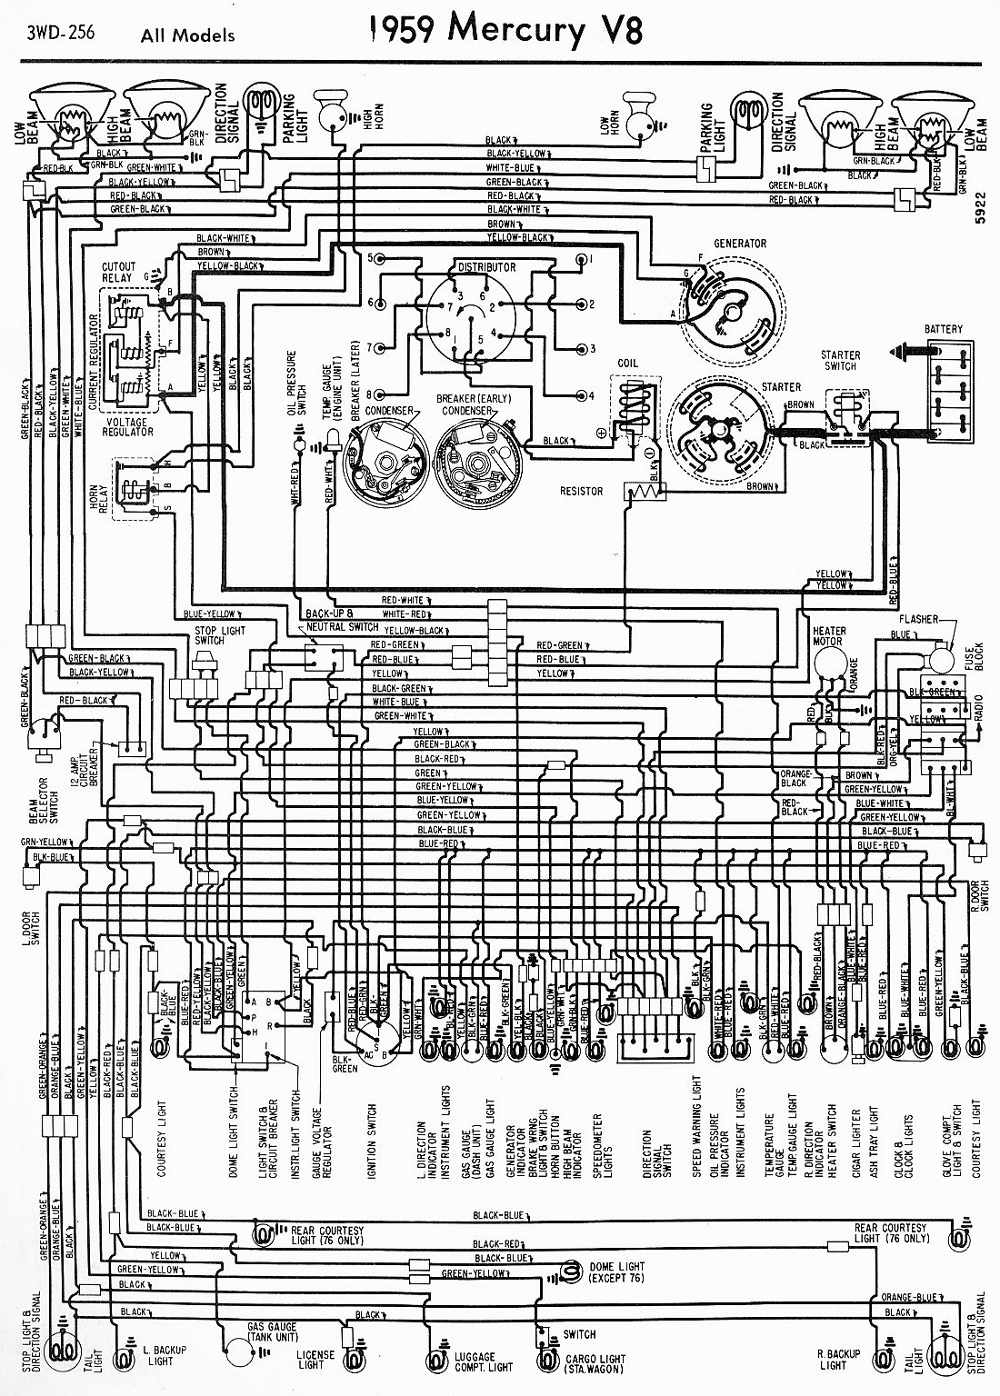 hight resolution of circuit wiring solution 1959 mercury v8 all models wiring diagram 1959 mercury v8 all models wiring